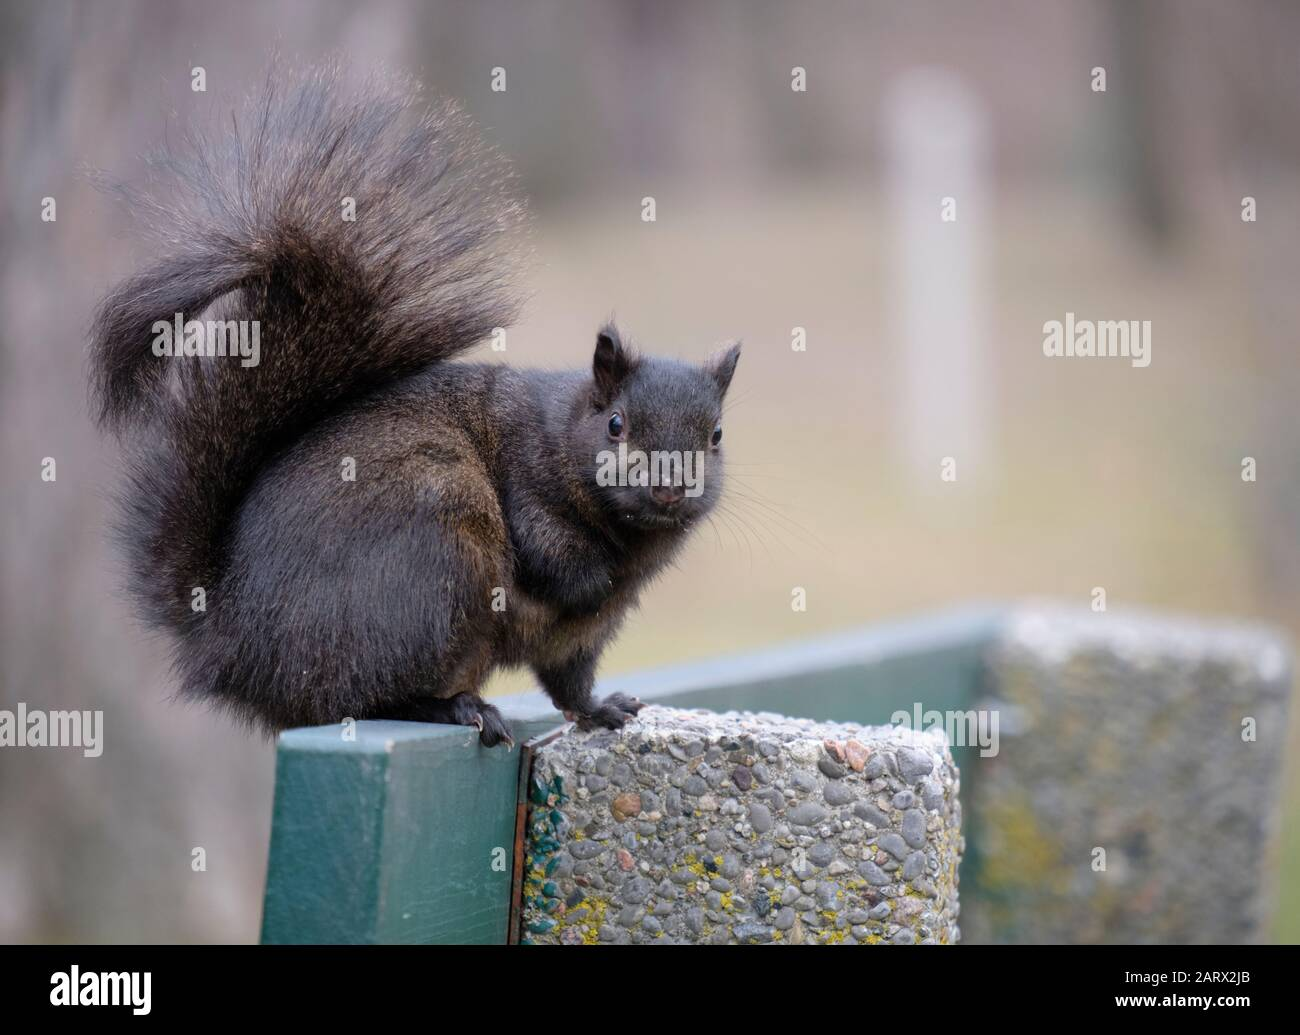 Black squirrel standing on bench looking at camera Stock Photo